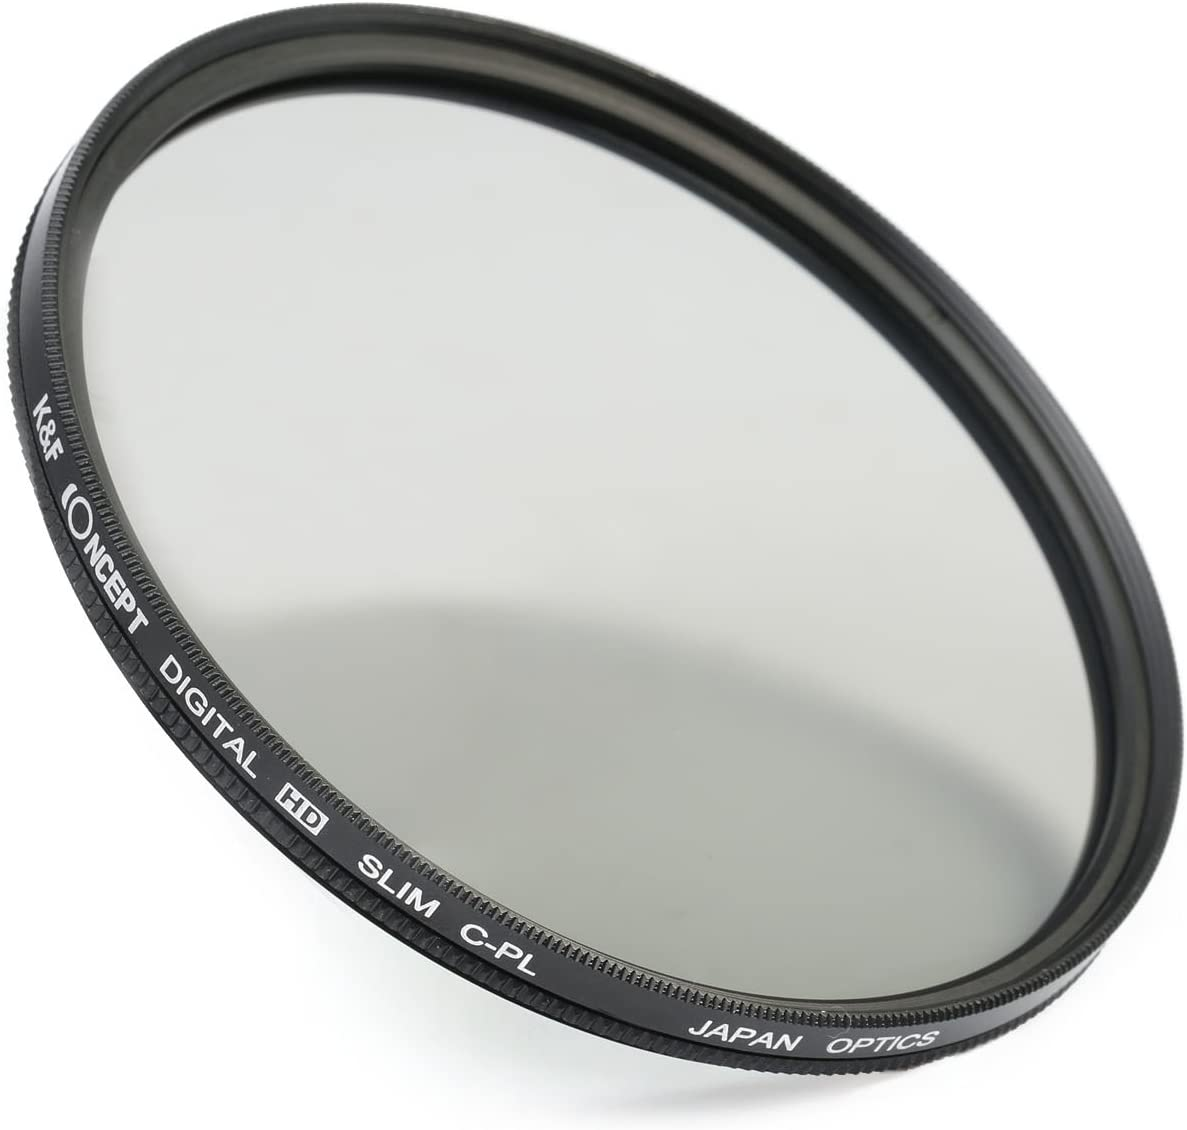 C-PL for Canon EOS 1Ds Mark III Circular Polarizer Multithreaded Glass Filter Multicoated 52mm